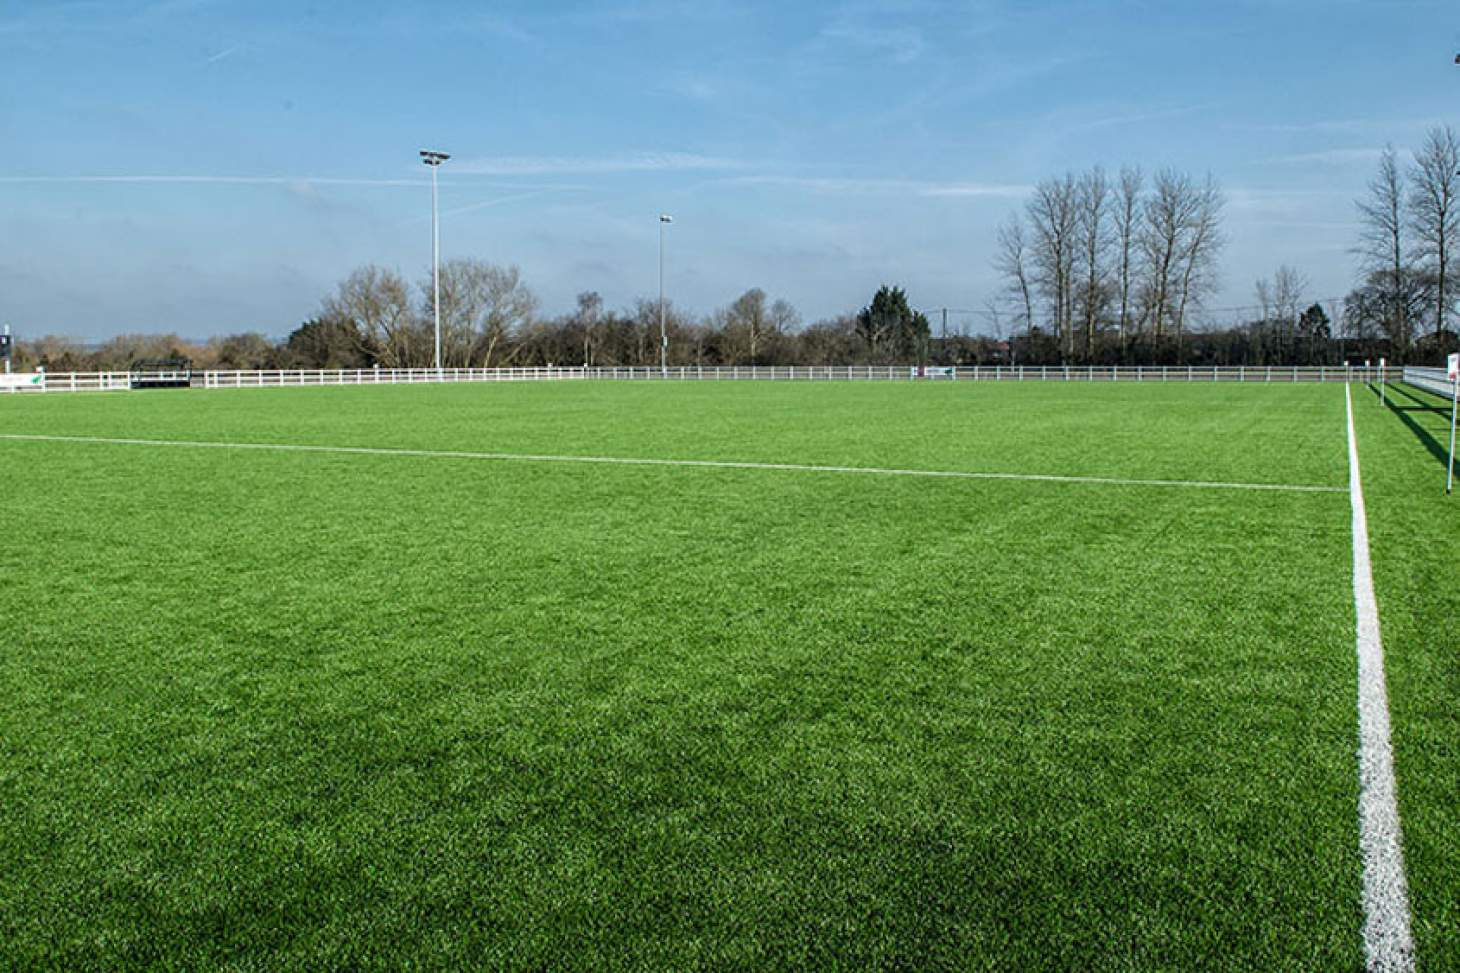 PlayFootball Bristol North 5 a side | 3G Astroturf football pitch